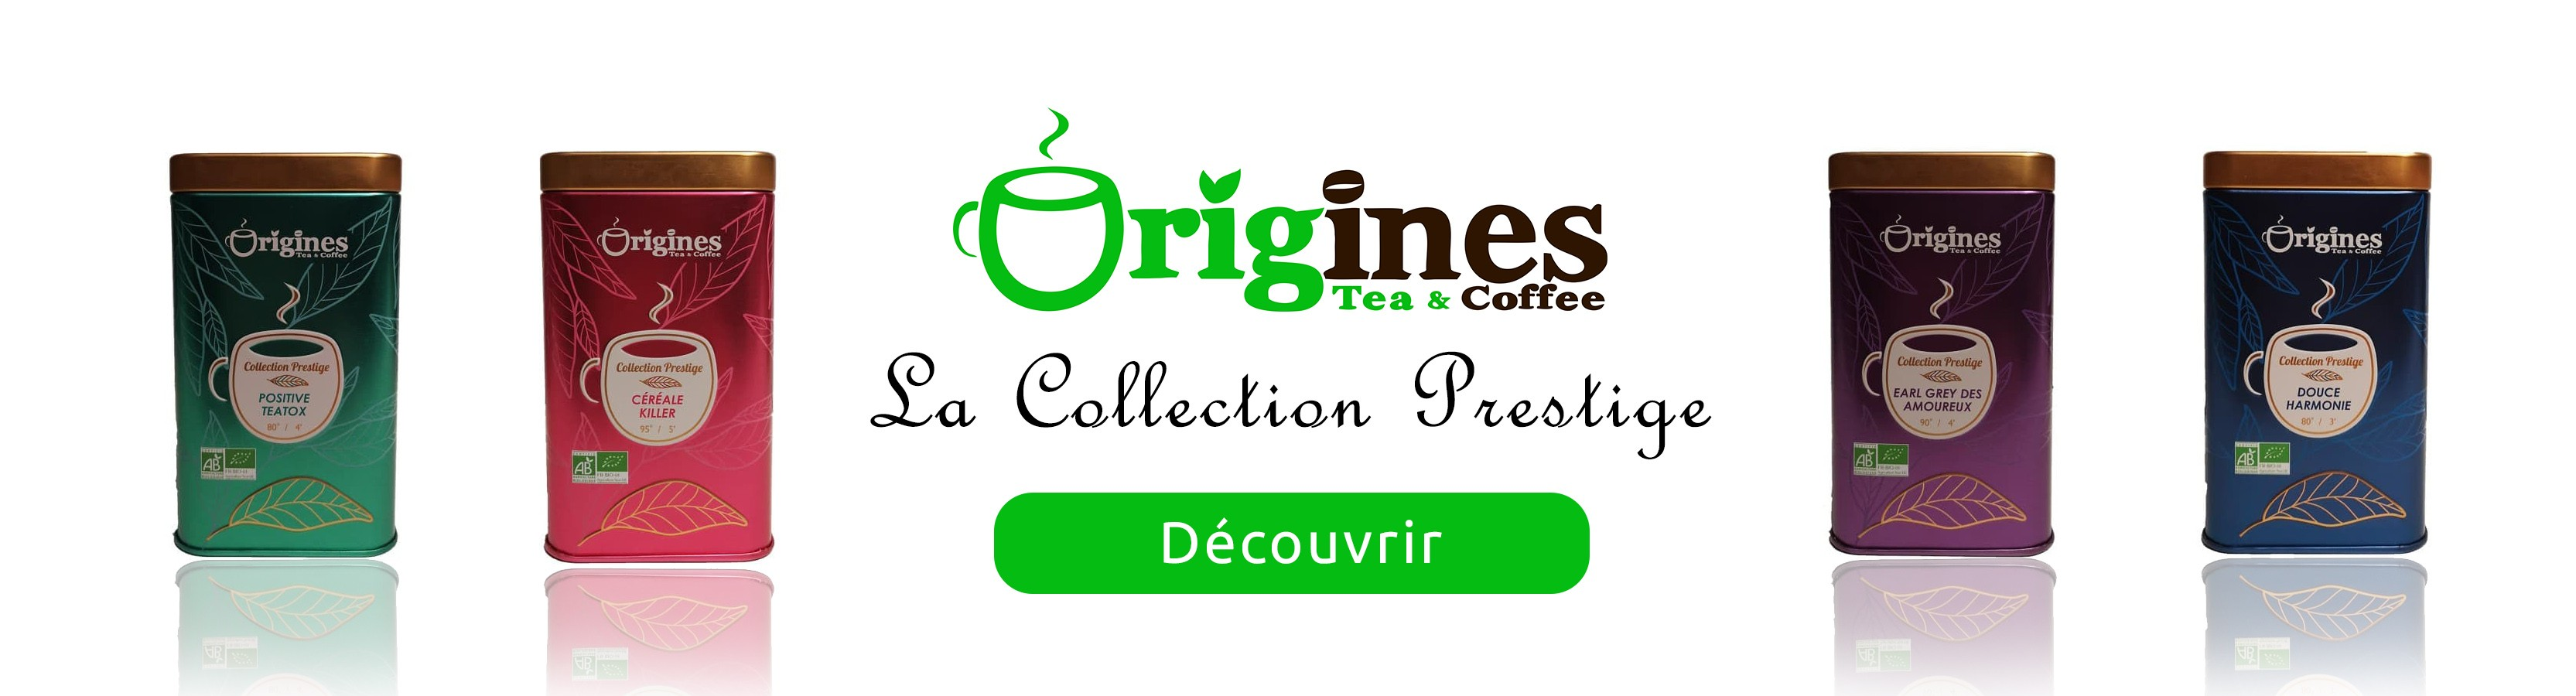 Origines Tea And Coffee